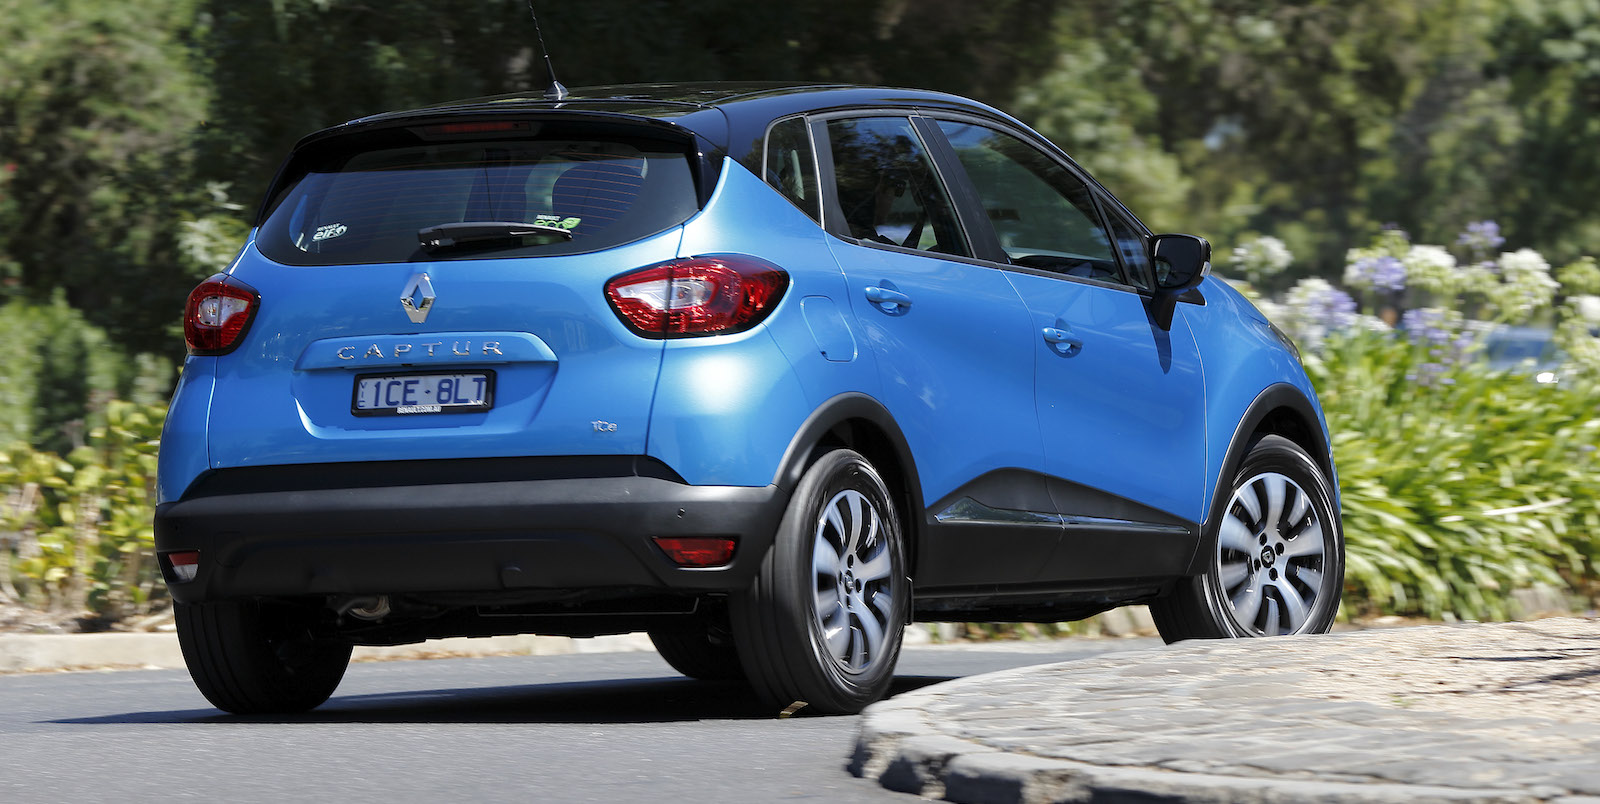 New Mercedes Suv >> 2015 Renault Captur Review | CarAdvice